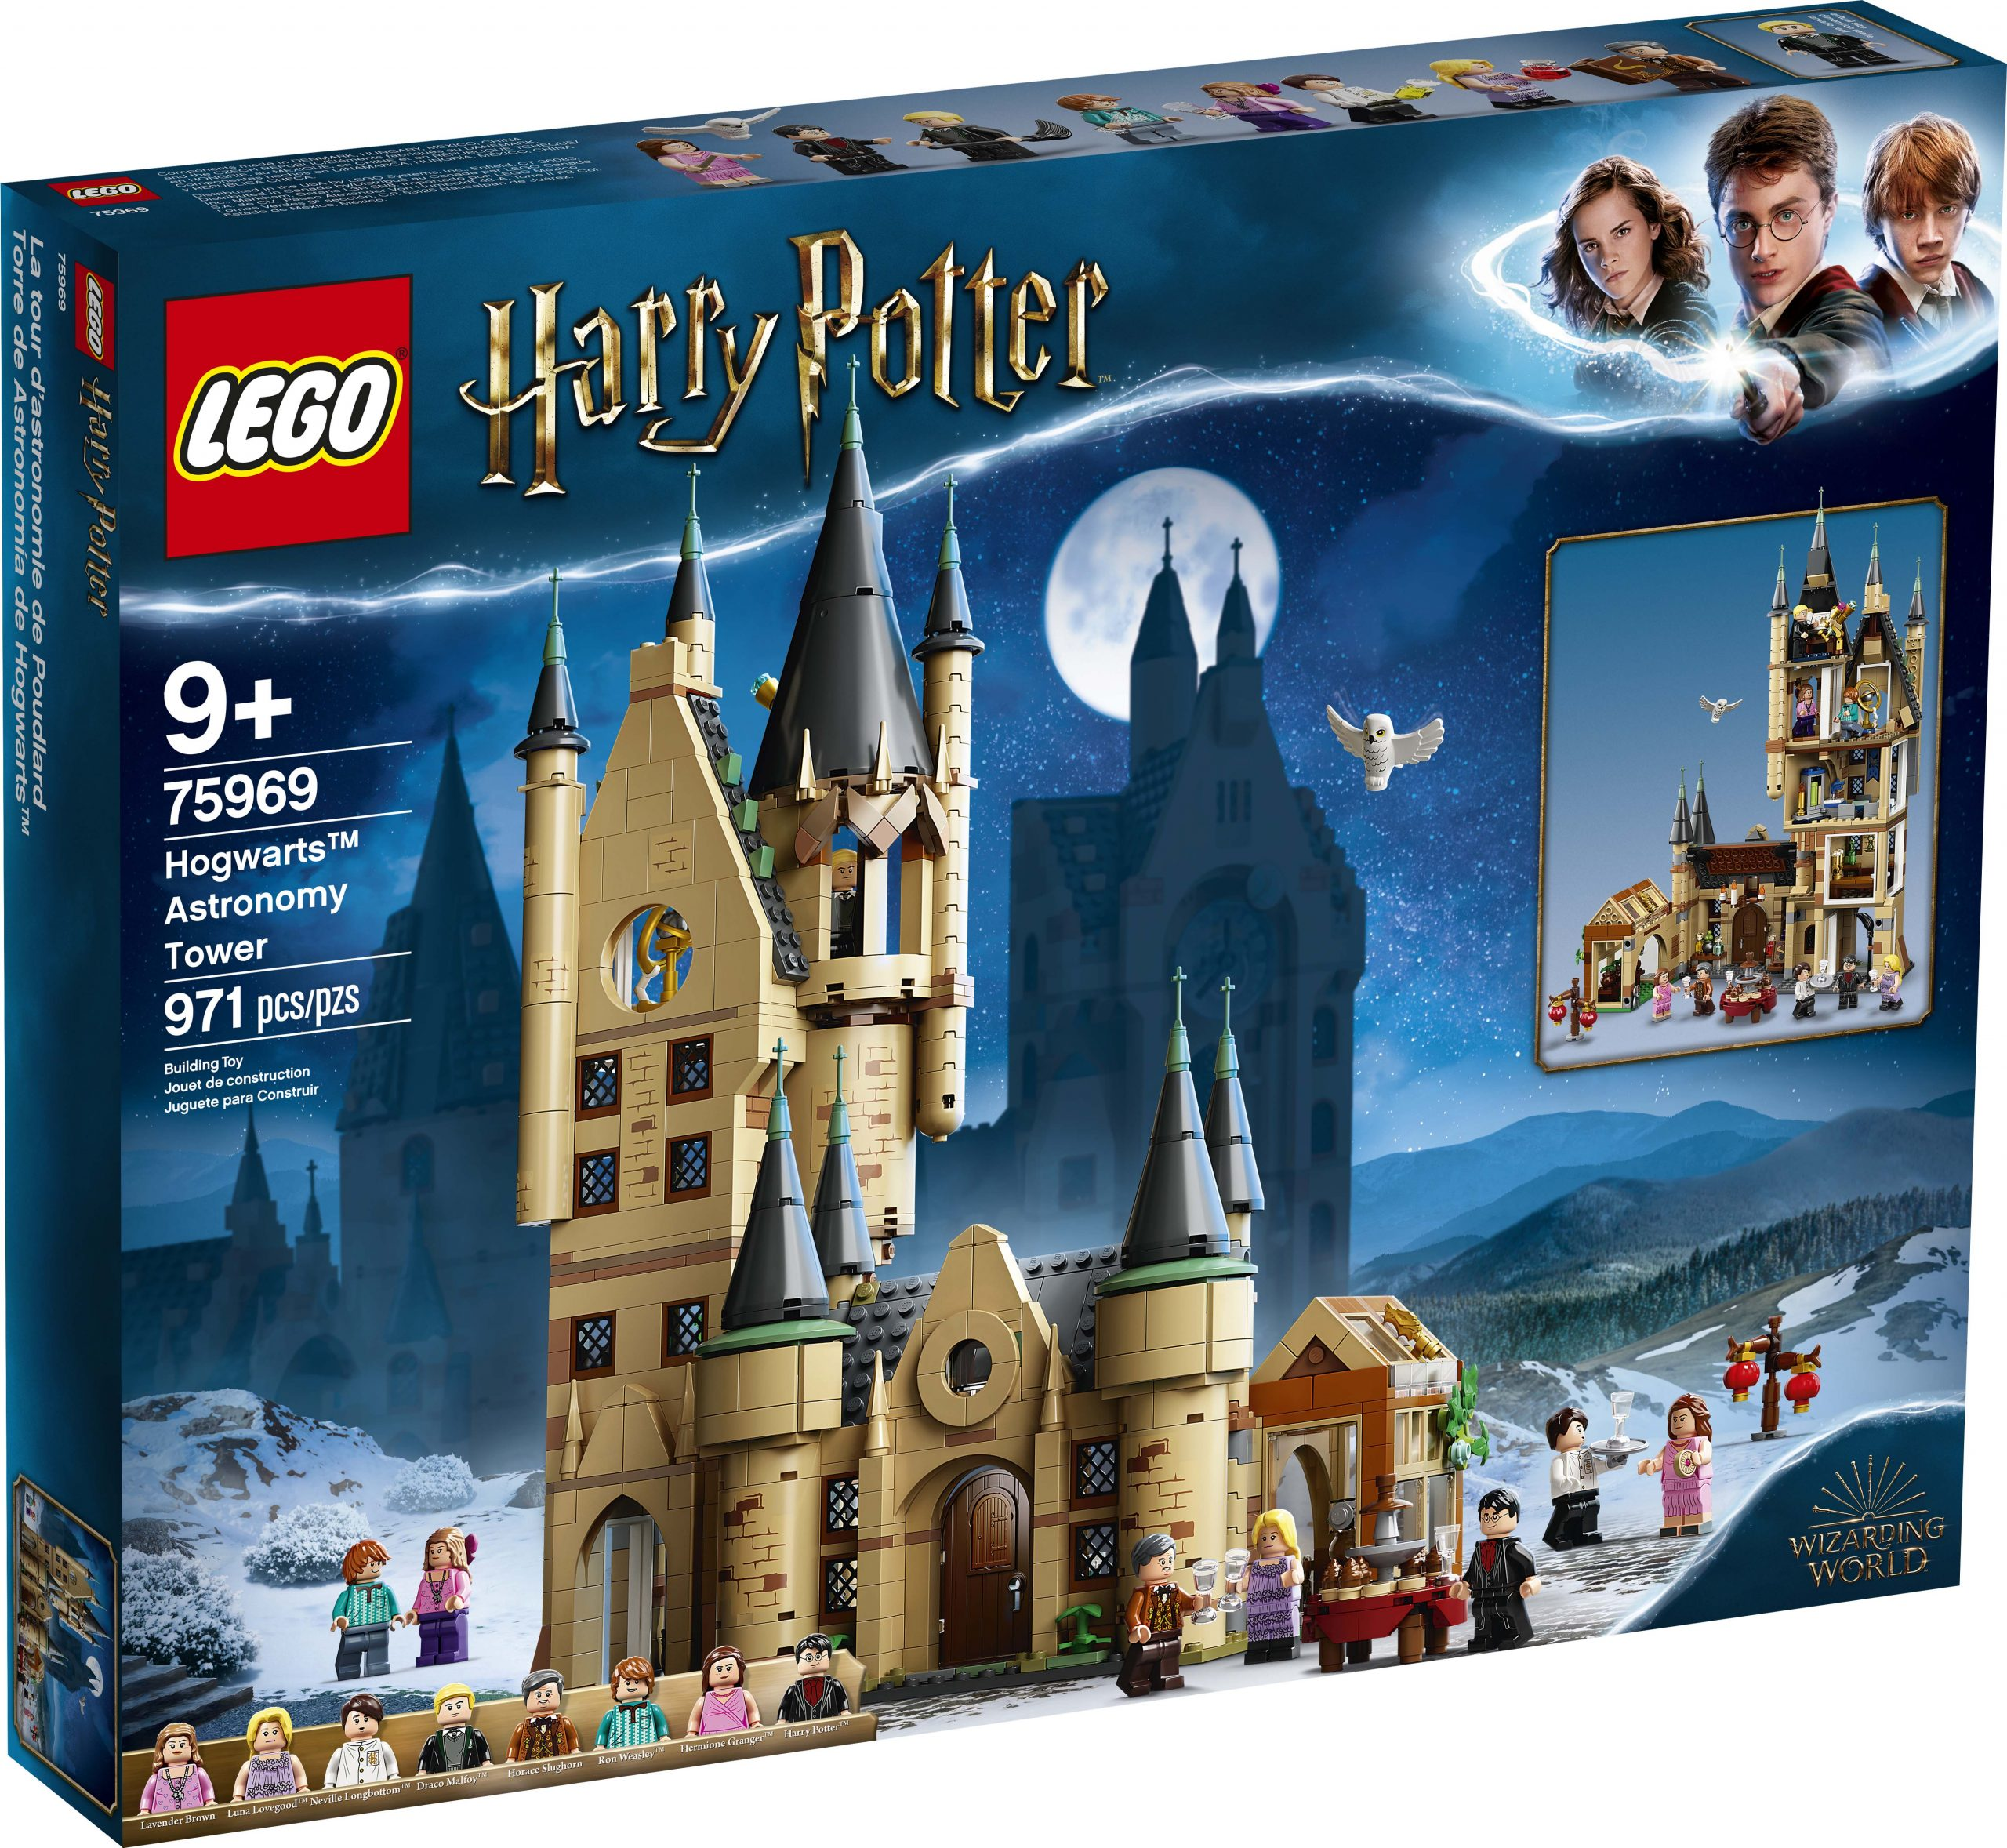 Lego Harry Potter Summer 2020 Sets Officially Announced The